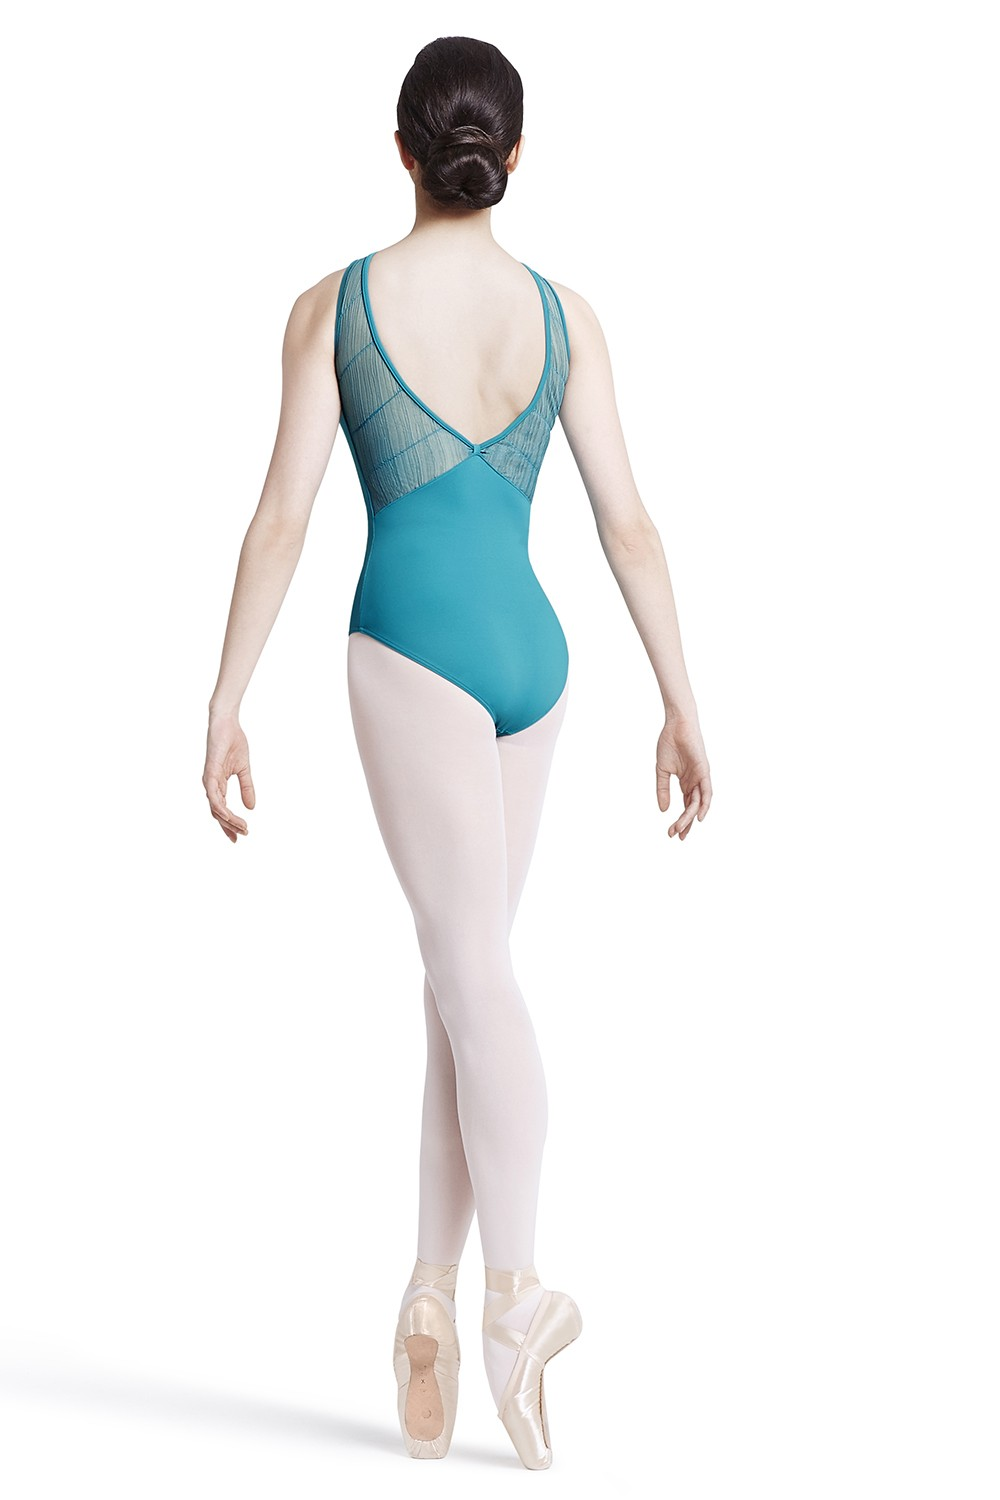 Justaucorps Sans Manches Dos A Boucles Womens Tank Leotards